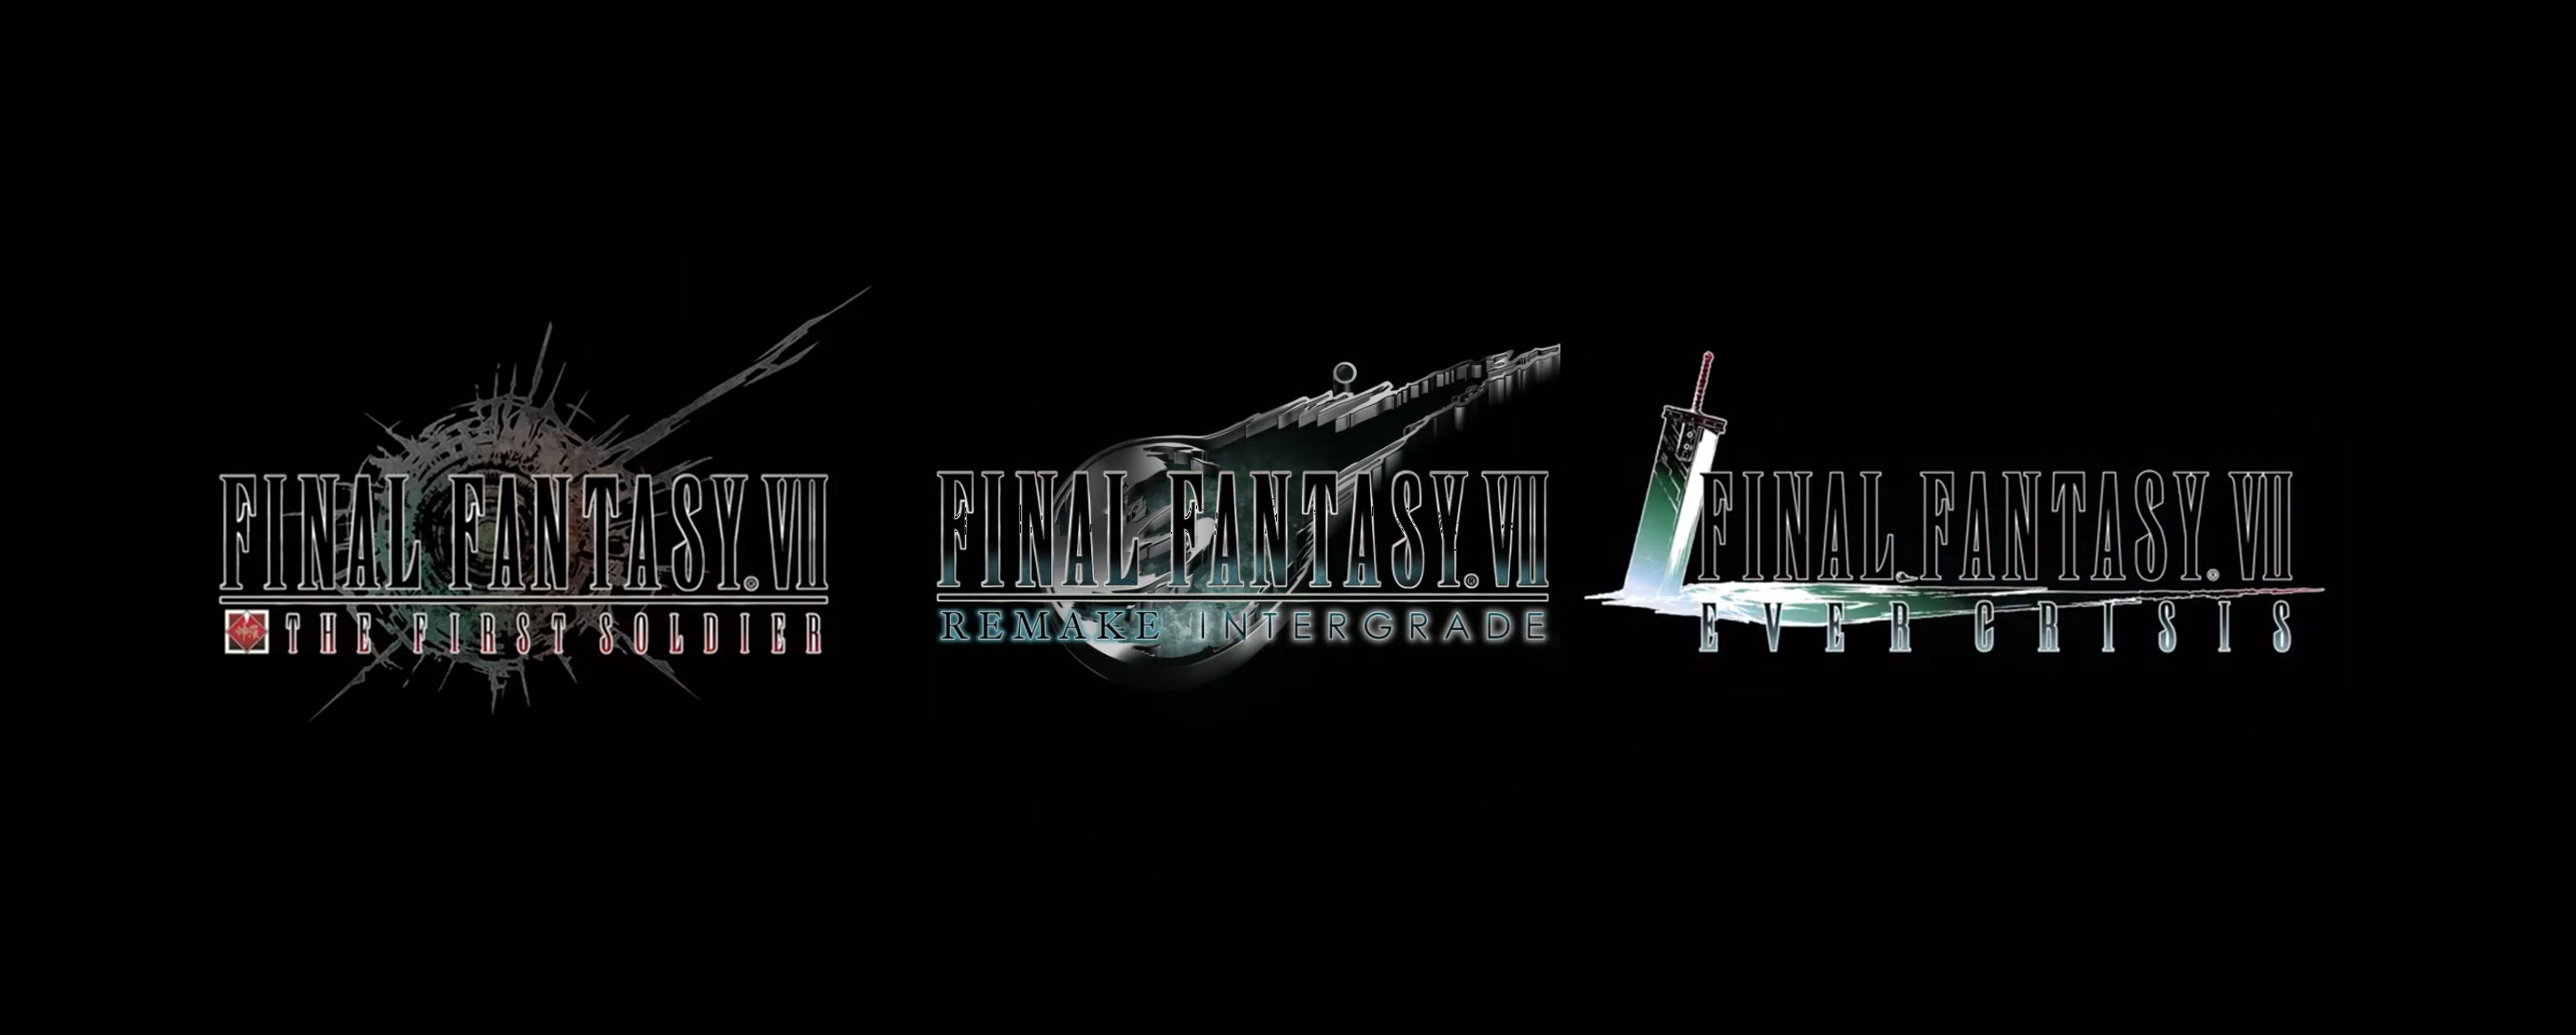 Final Fantasy 7 Remake Intergrade Interview with Nomura Translation